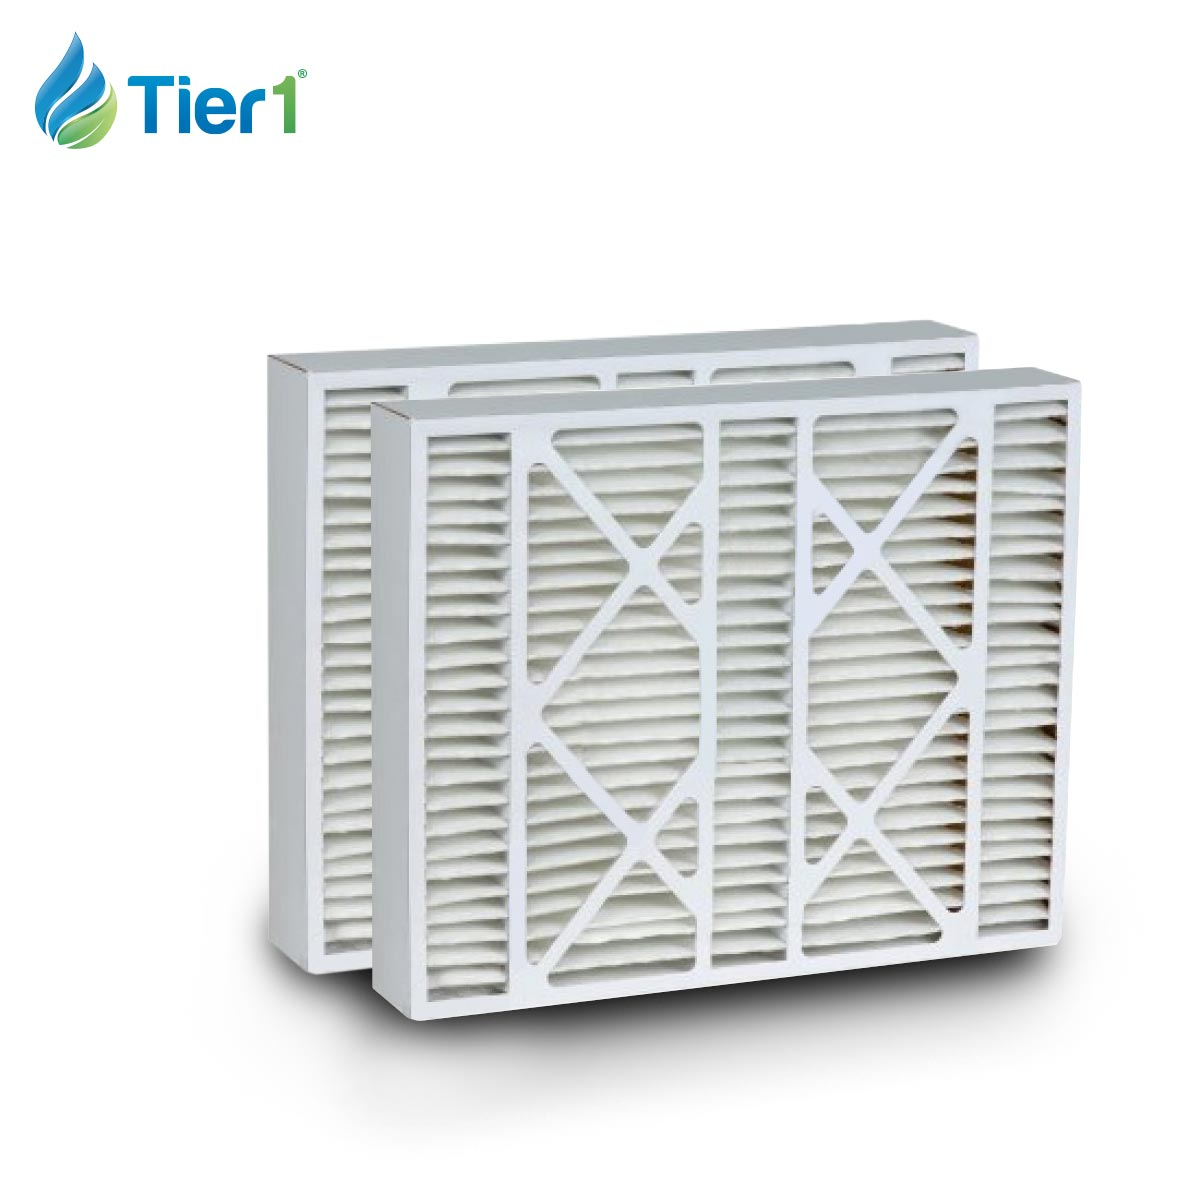 Tier1 brand replacement for Electro Air - 16 x 21 x 5 - MERV 11 (2-Pack) TIER1-DPFI16X21X5M11DEA